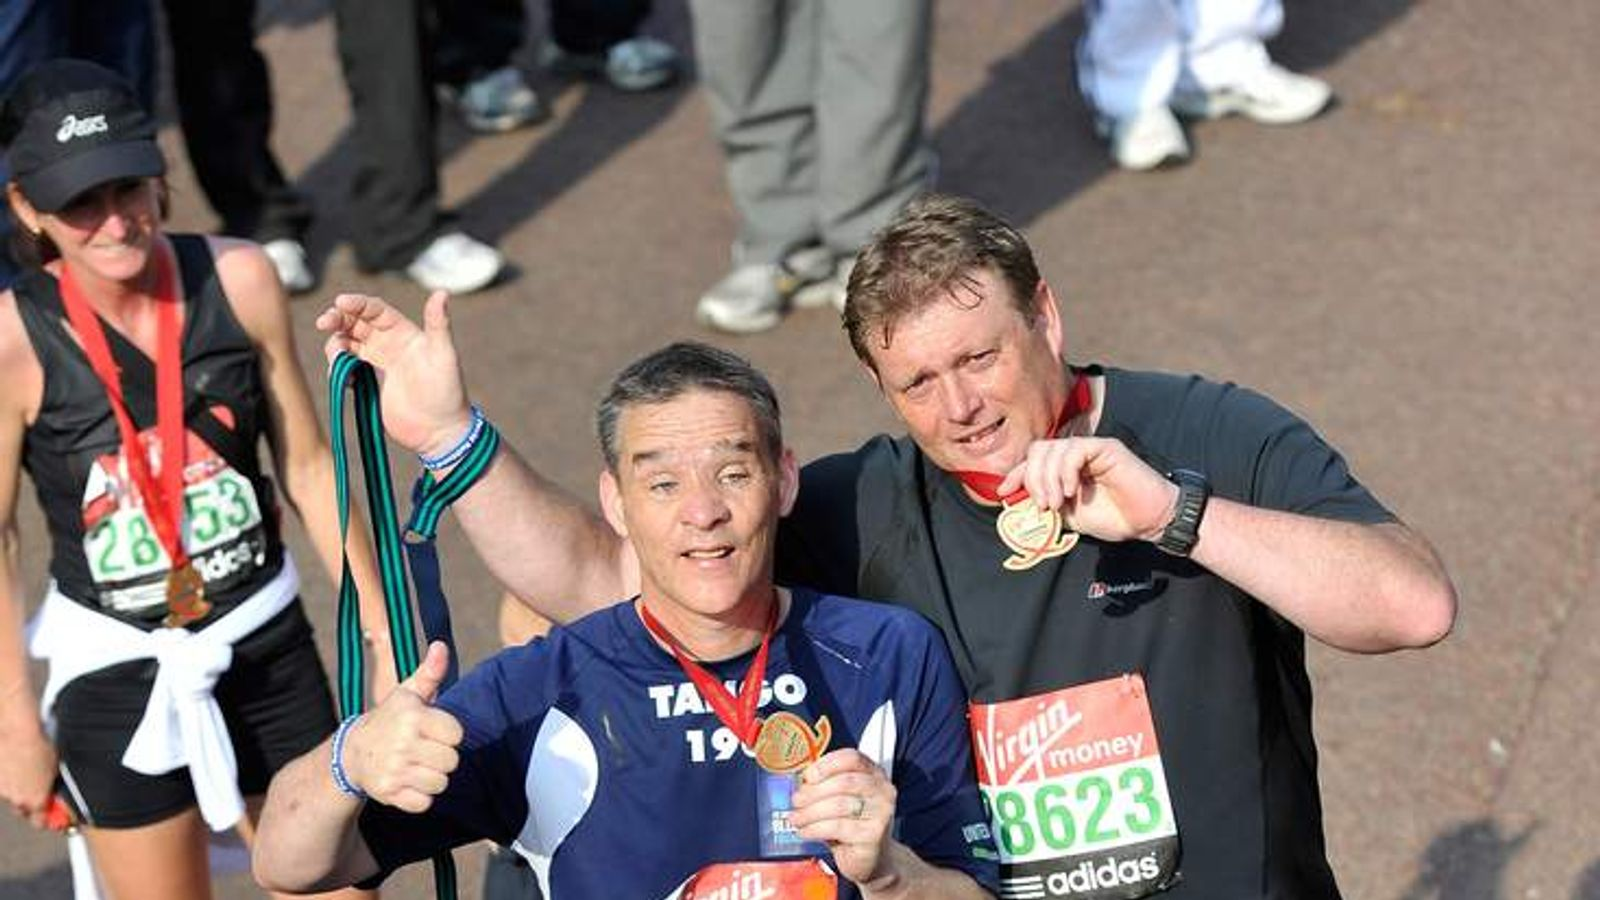 Pc David Rathband (L) completes the 2011 Virgin London Marathon